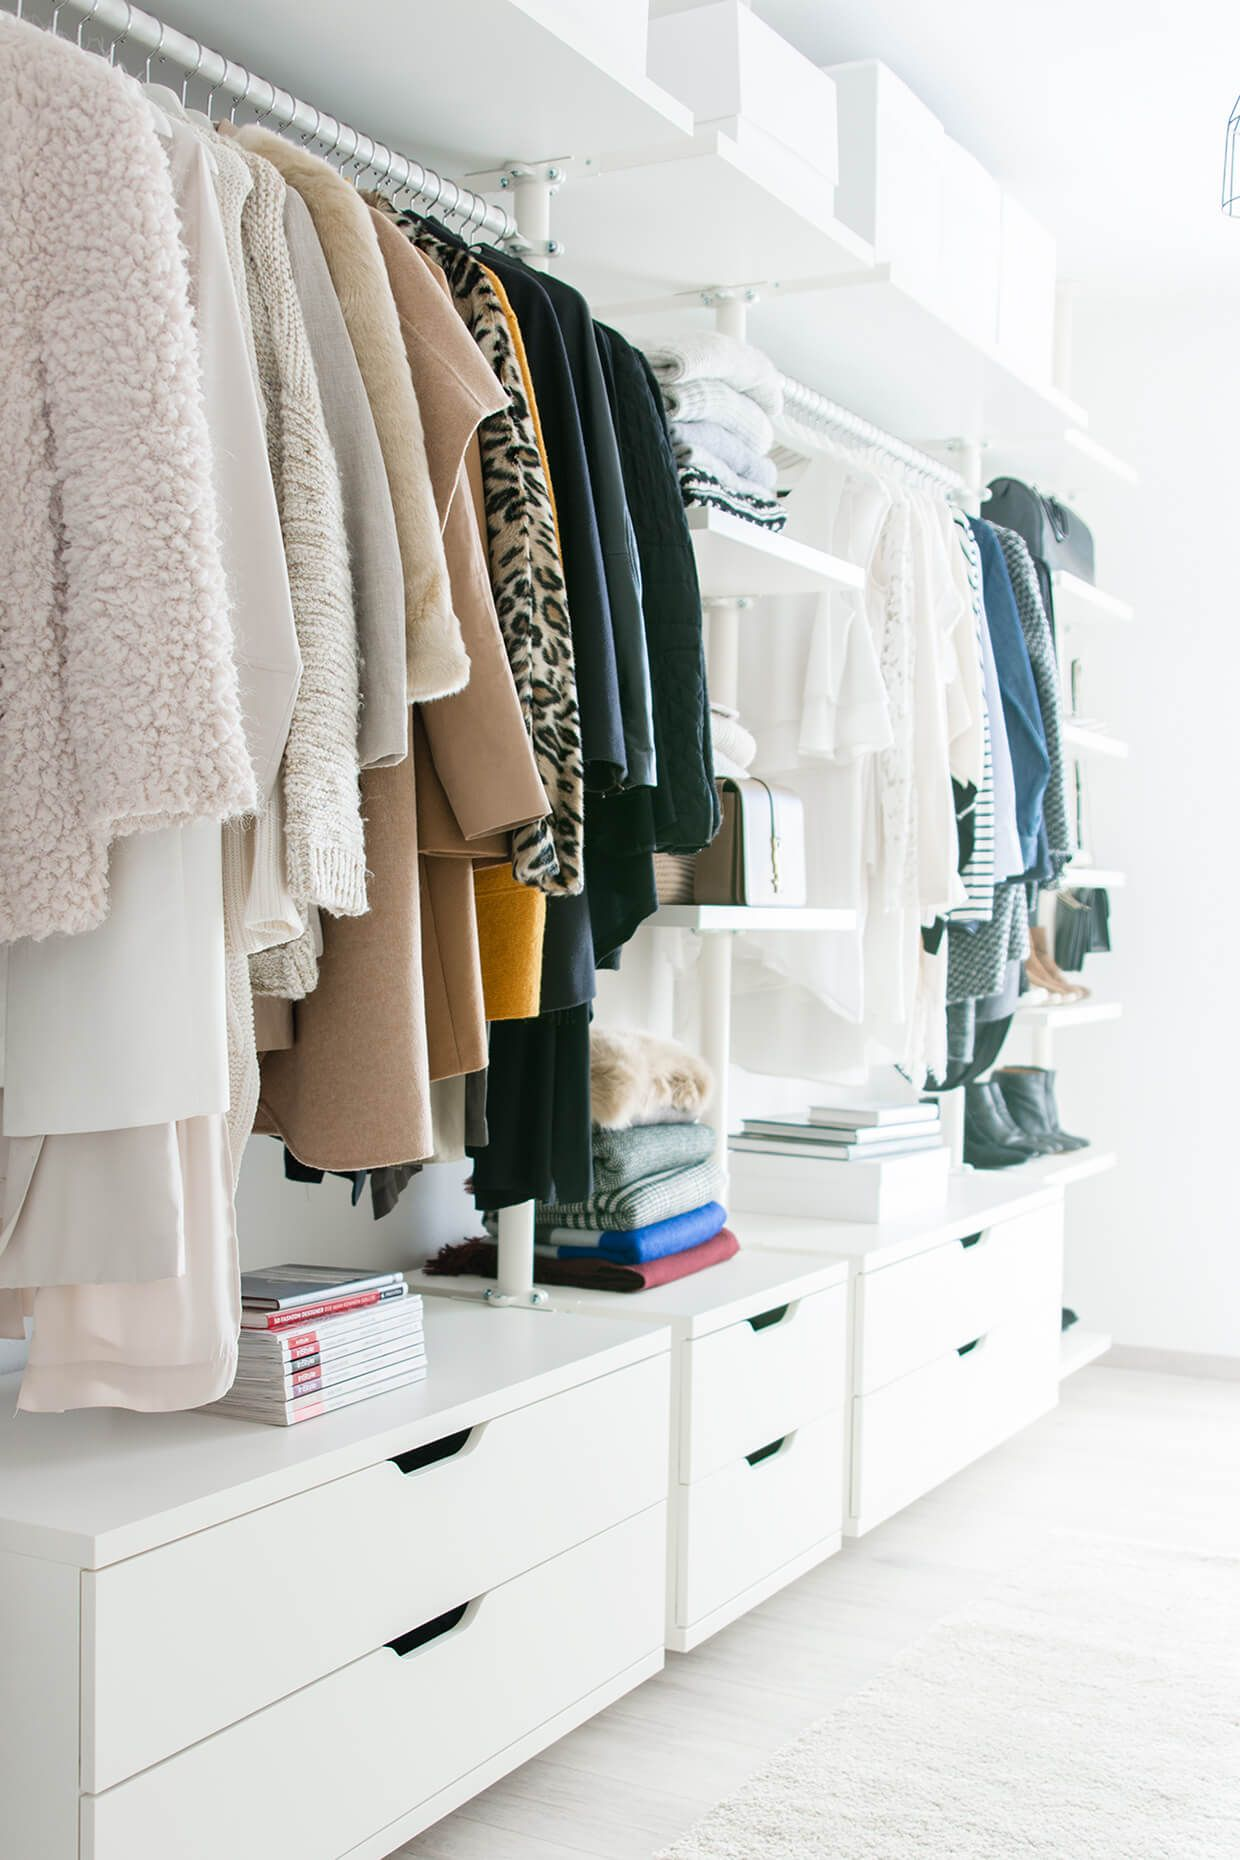 pic wardrobe marvelous small very walk well closets white organize ideas in closet storage cabinets and with organized walking